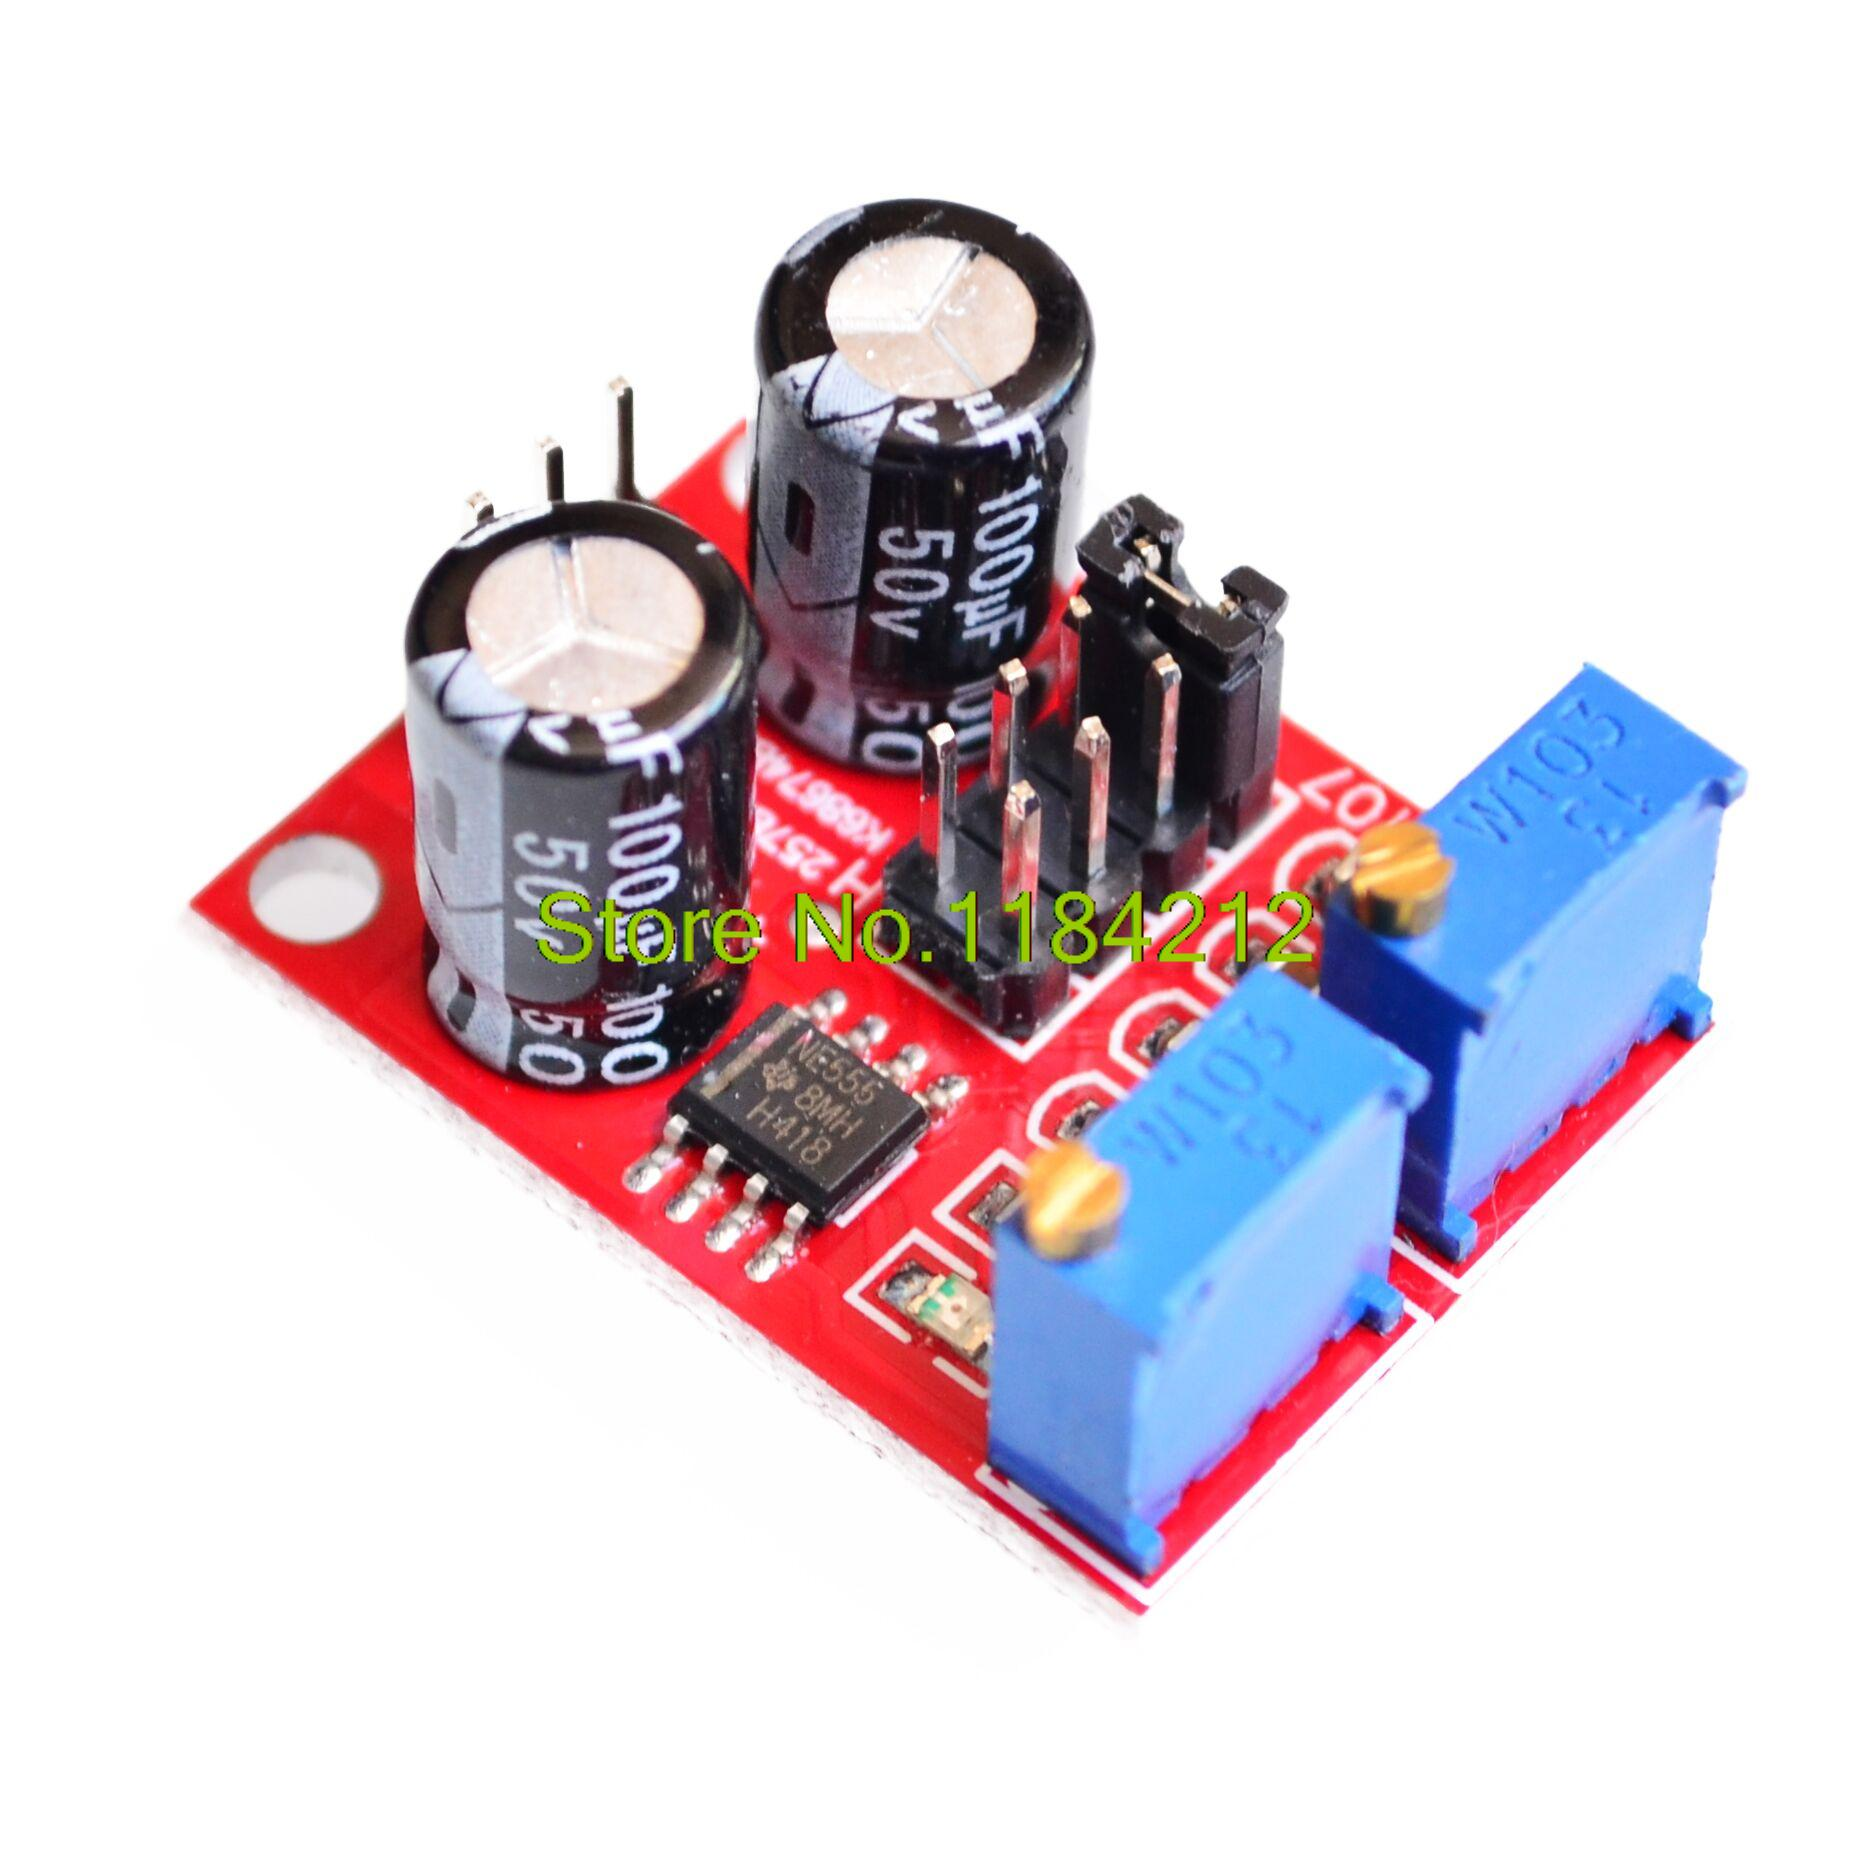 NE555 Pulse Frequency Duty Cycle Adjustable Module Square Wave Signal Generator gadget